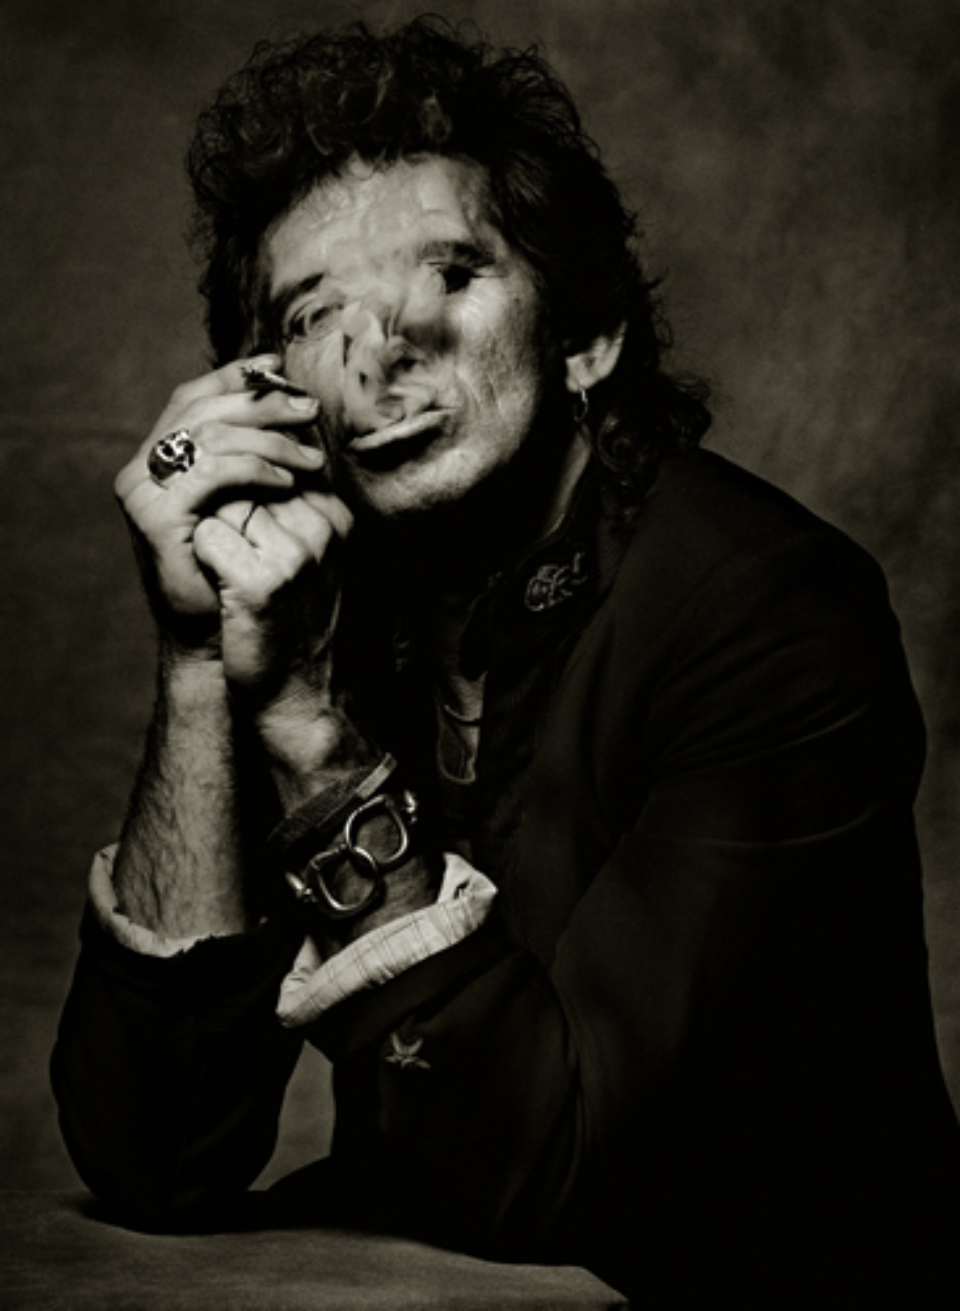 Albert Watson: Keith Richards New York City, 1988 Artist label on verso Archival pigment print 76 x 61 cm Ed. 25